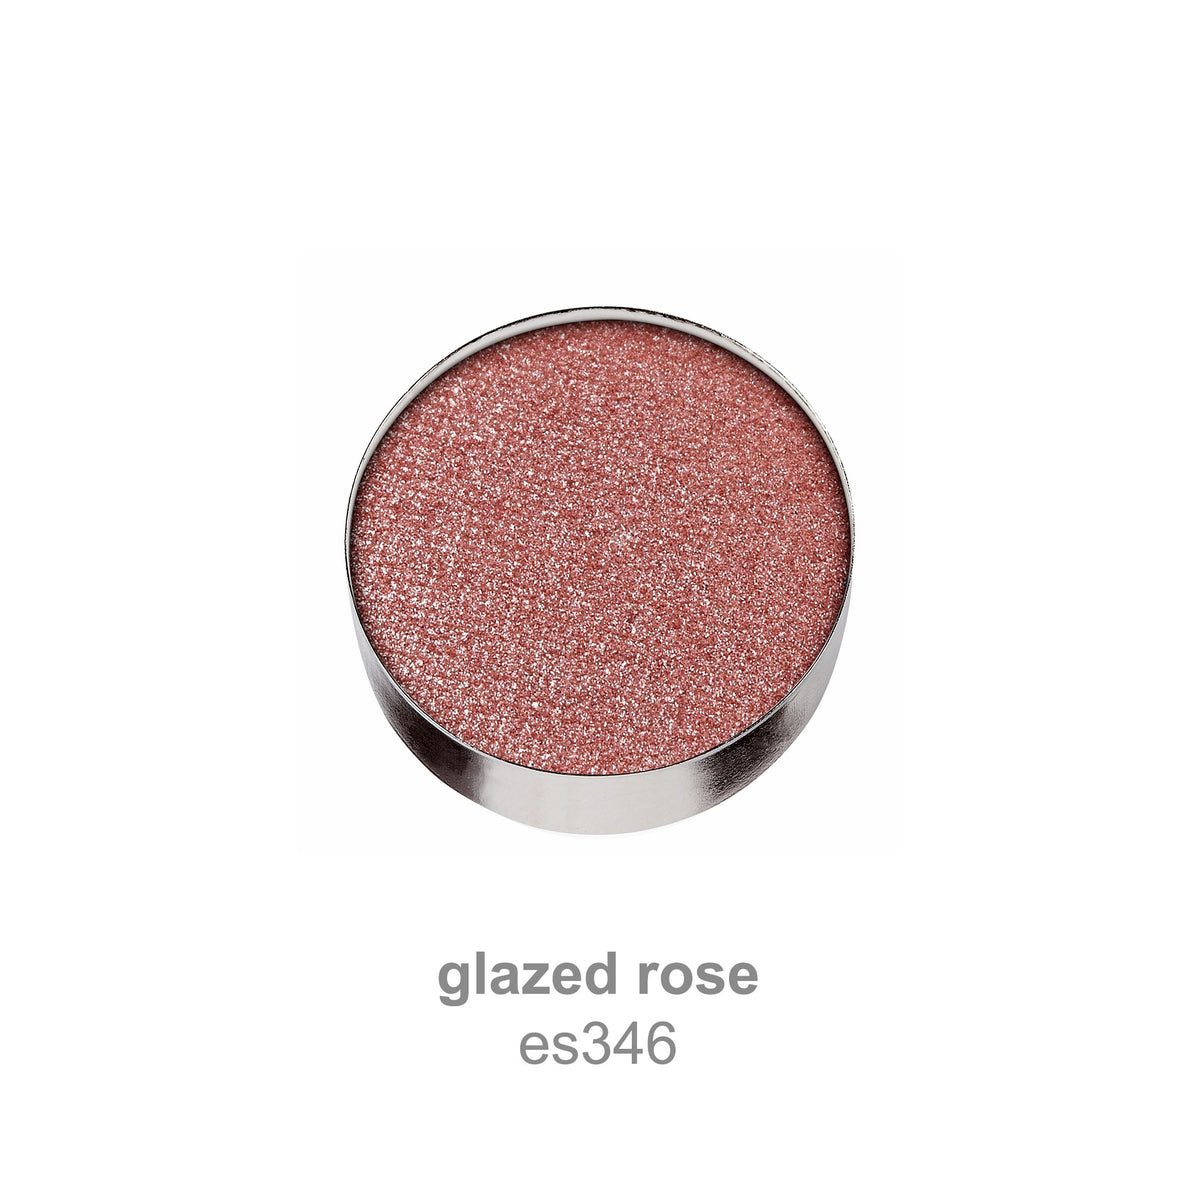 glazed rose (es346)